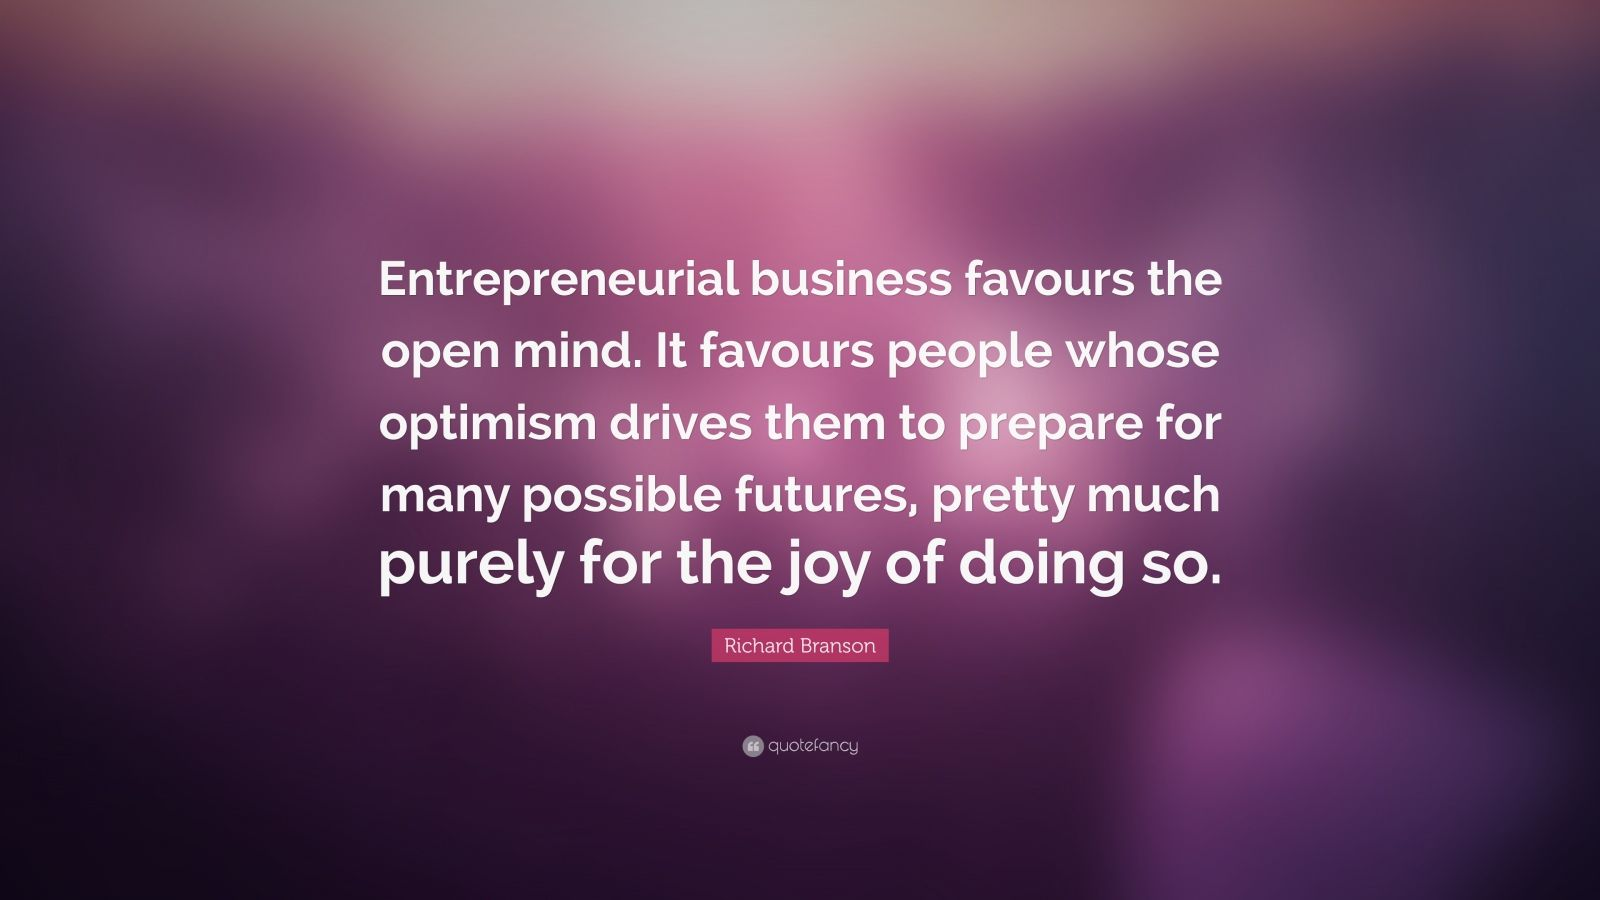 """Richard Branson Quote: """"Entrepreneurial business favours the open mind. It favours people whose optimism drives them to prepare for many possible futures, pretty much purely for the joy of doing so."""""""